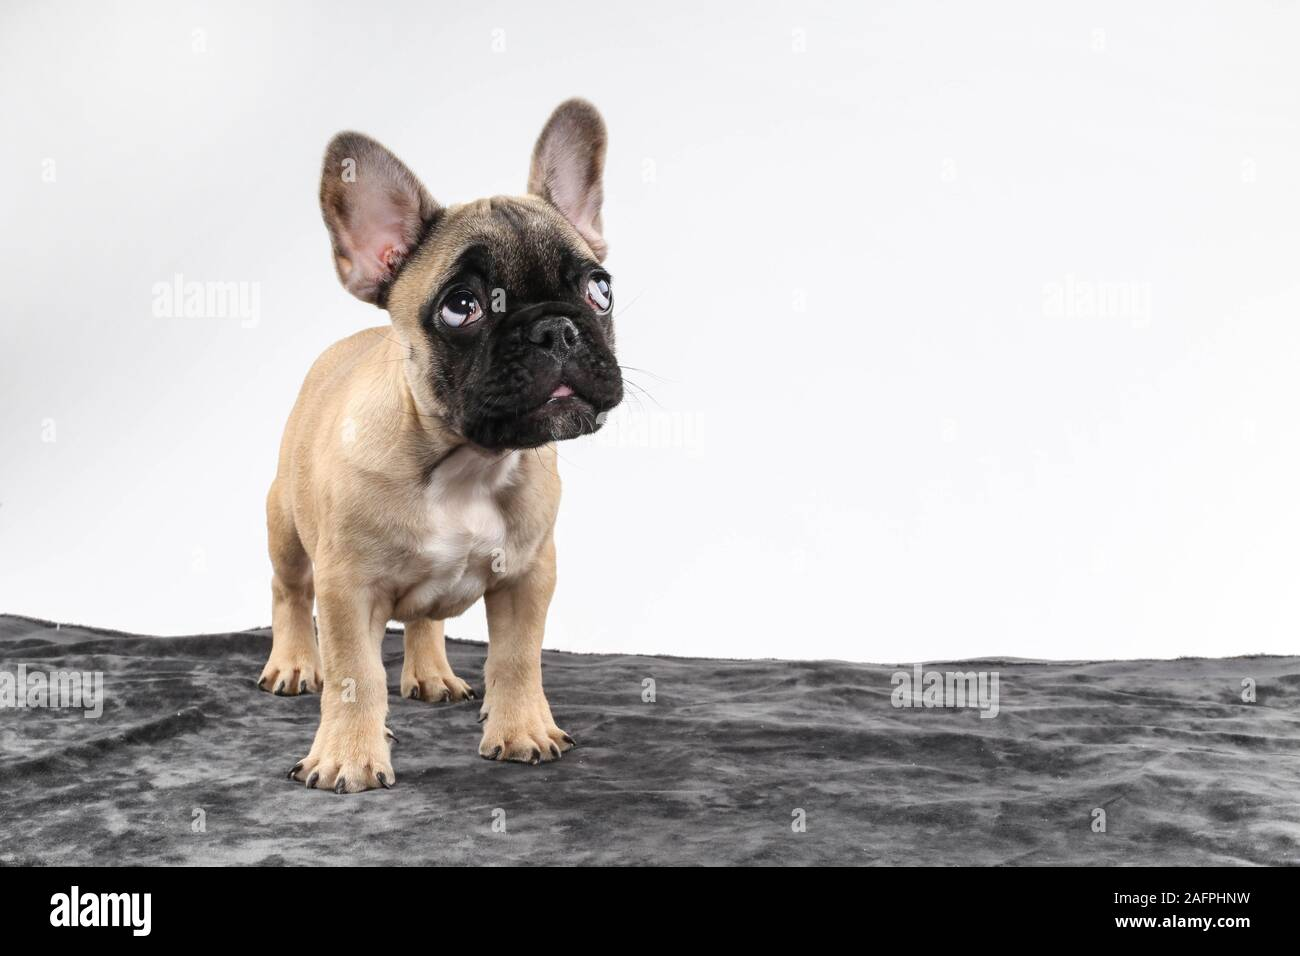 Frenchie Pup High Resolution Stock Photography And Images Alamy